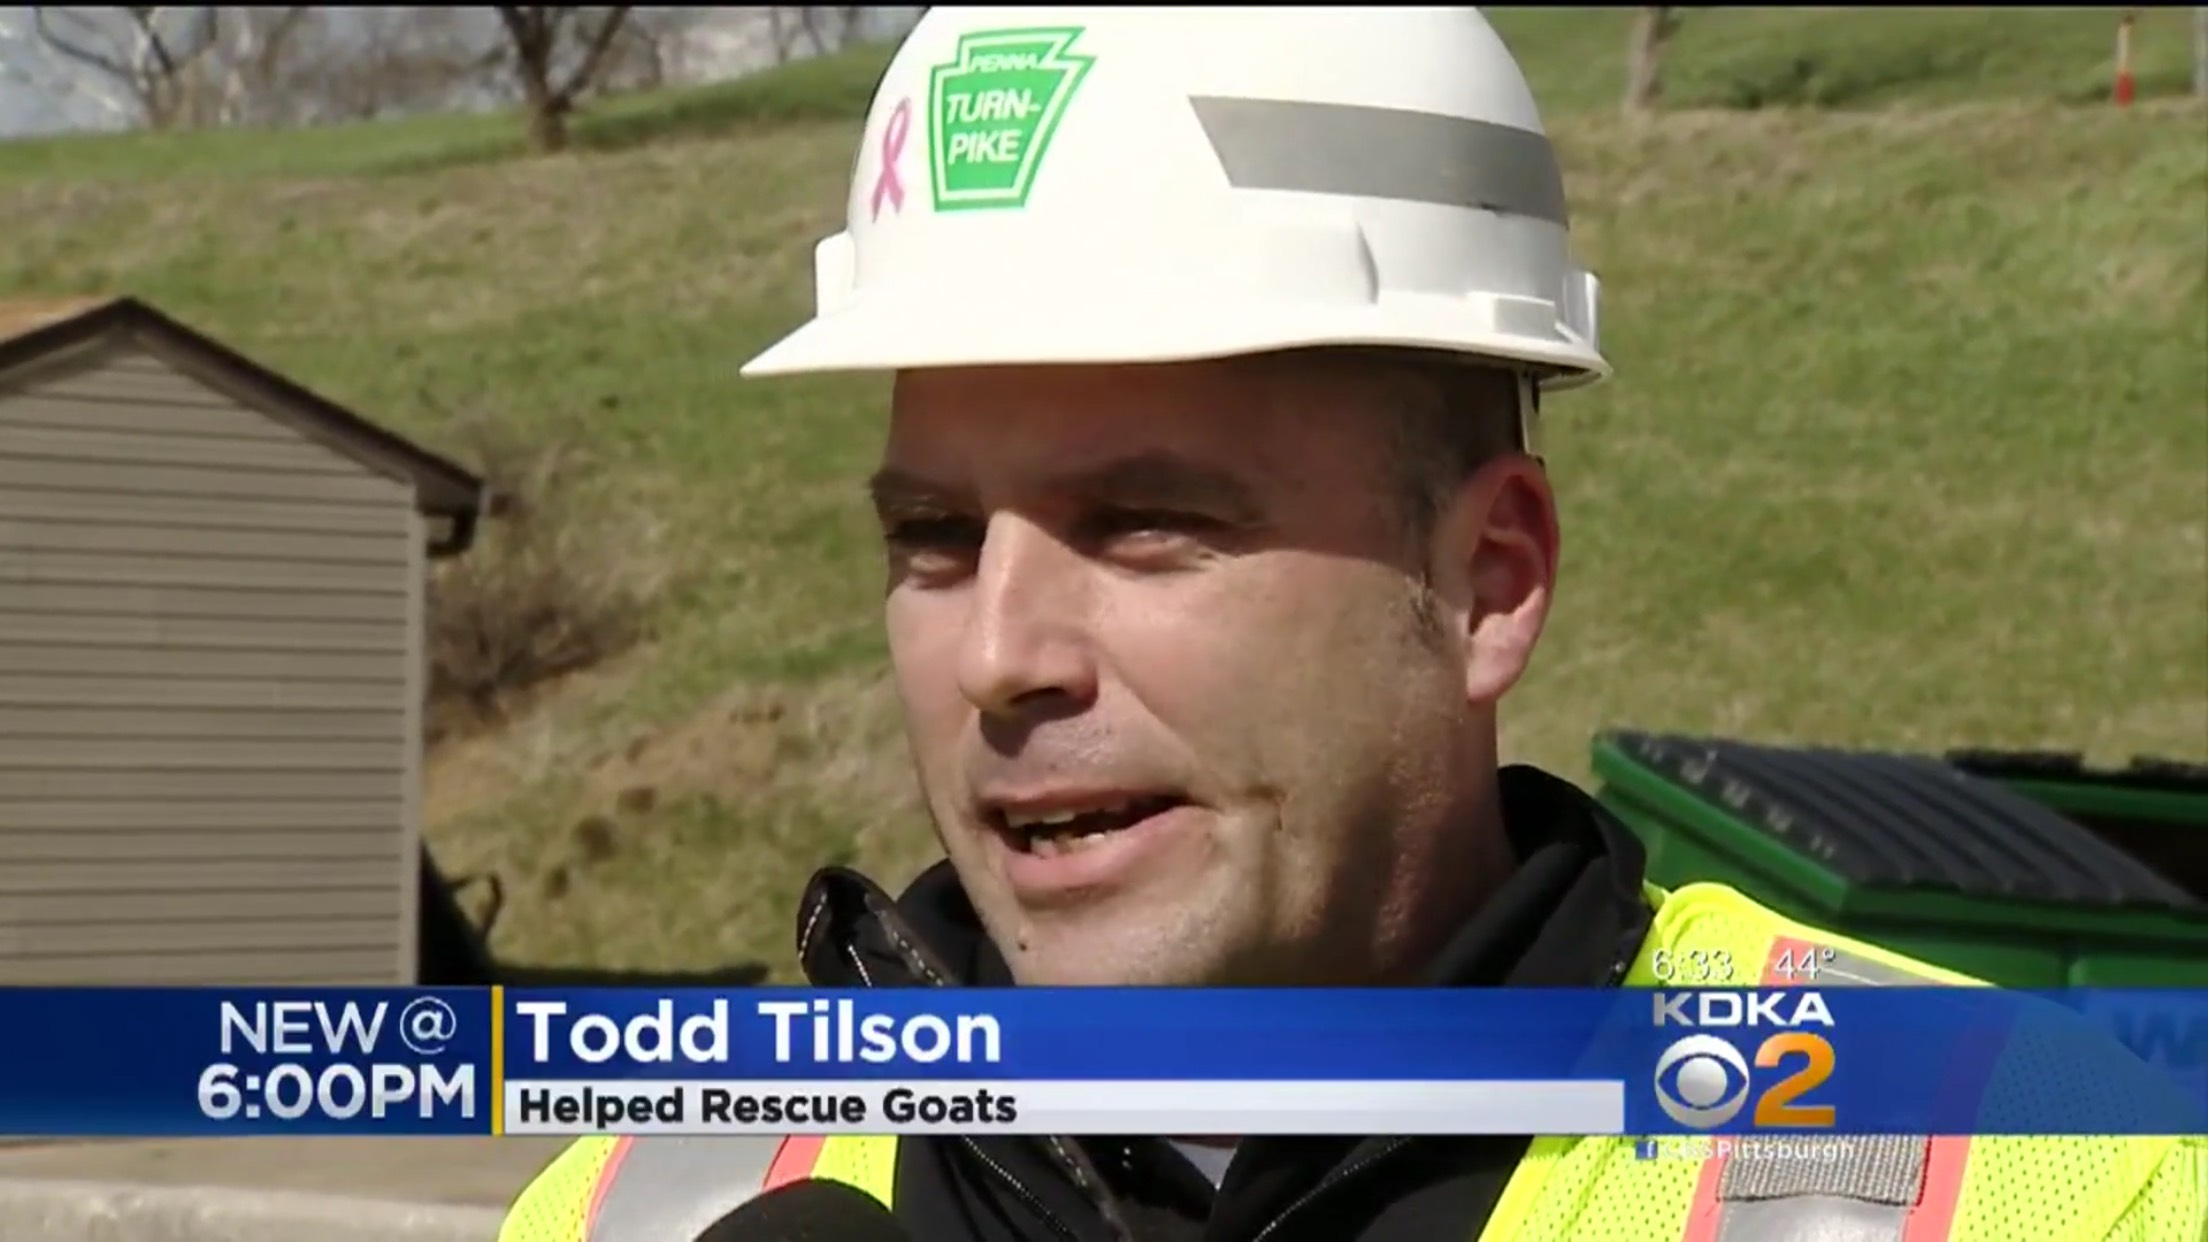 Todd Tilson: Helped Rescue Goats